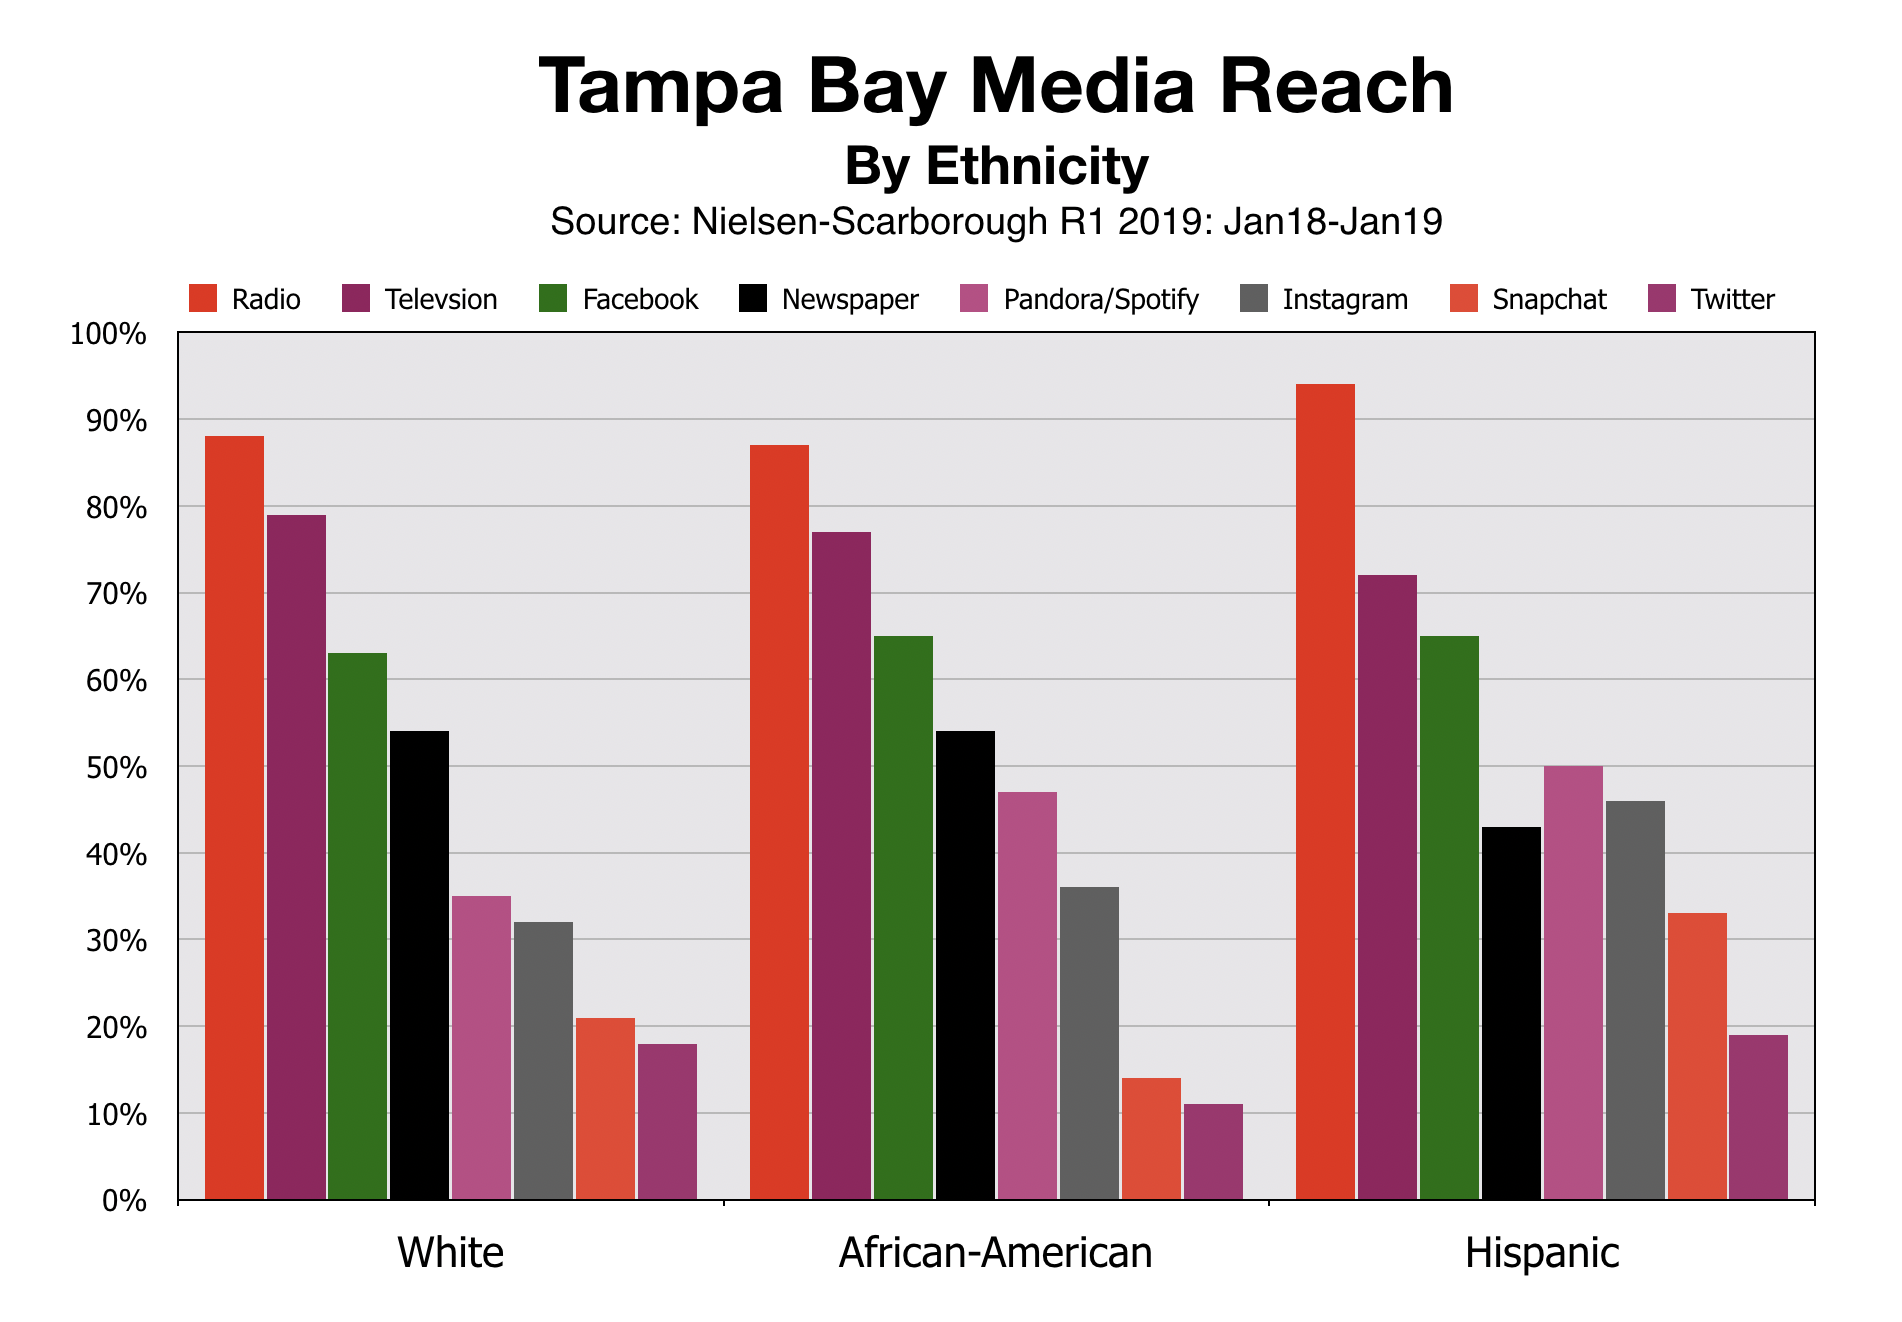 Advertise In Tampa Bay Media Reach by Ethic Demographic